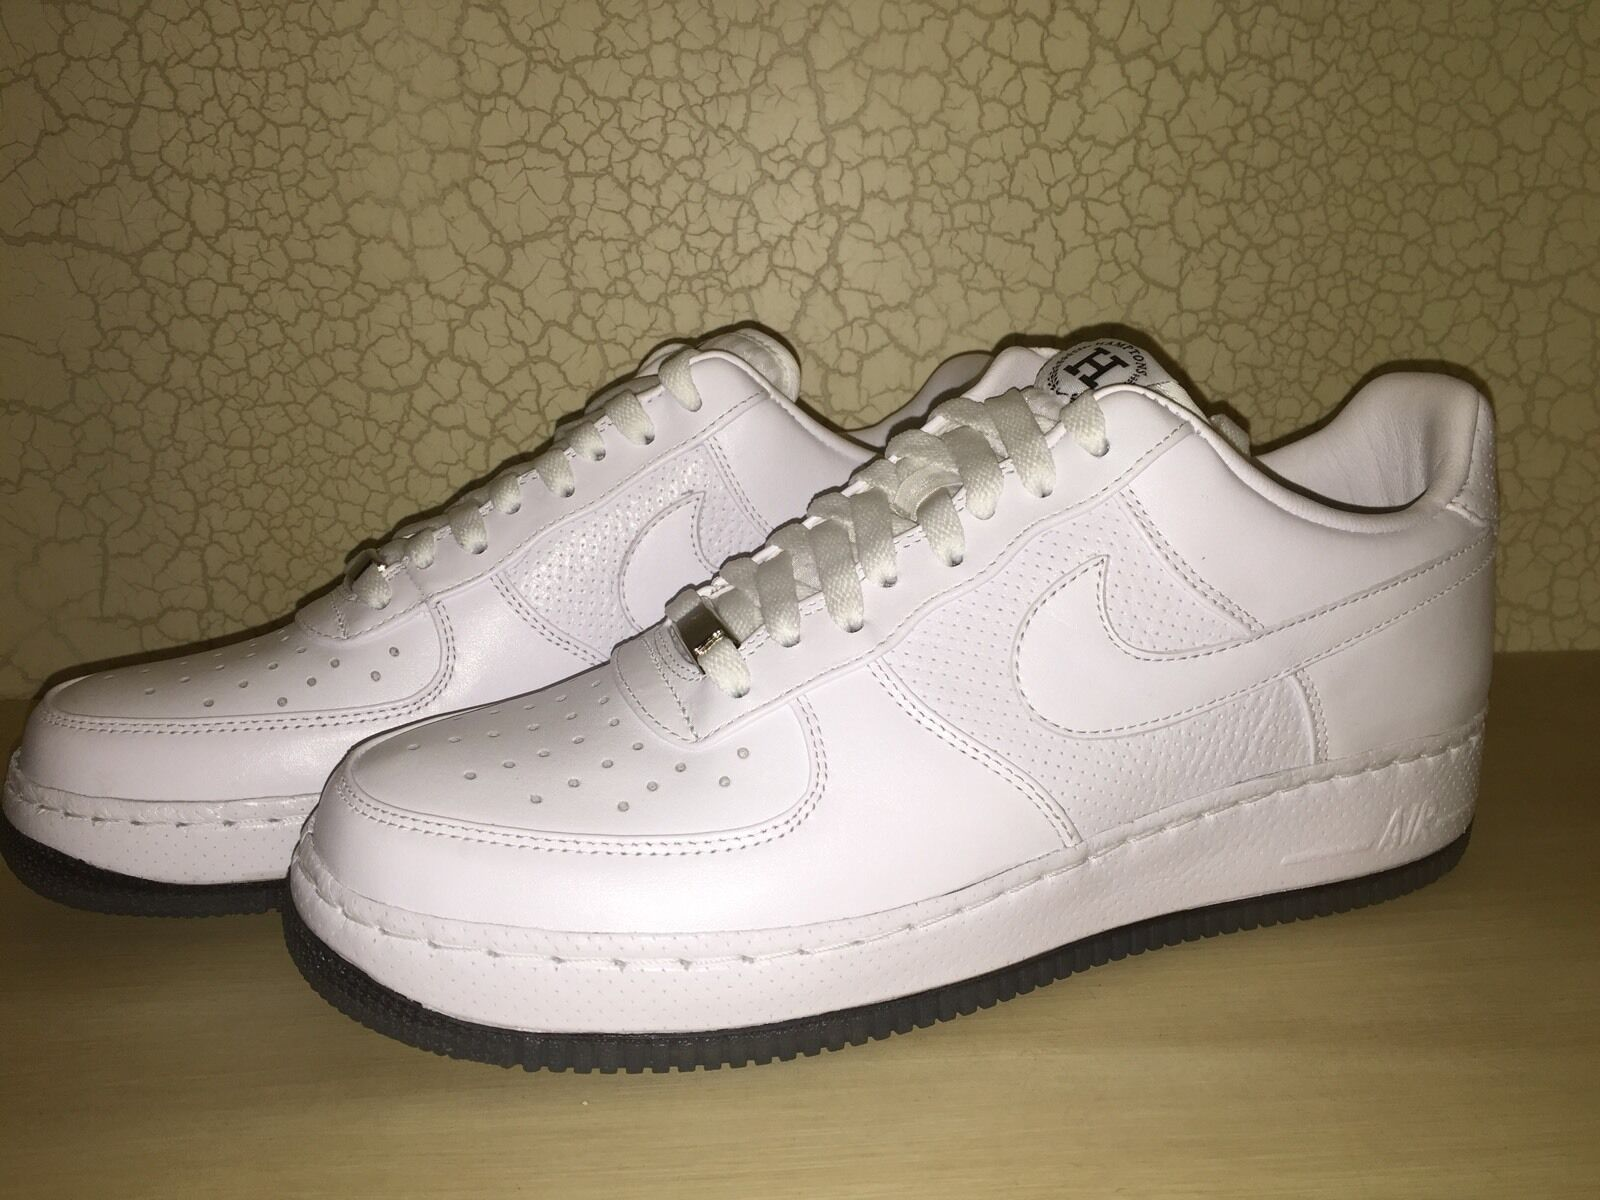 Nike air force 1 90 prm hamptons gute boden 95 labor max 418114 100 sz 9,5 neue 1.